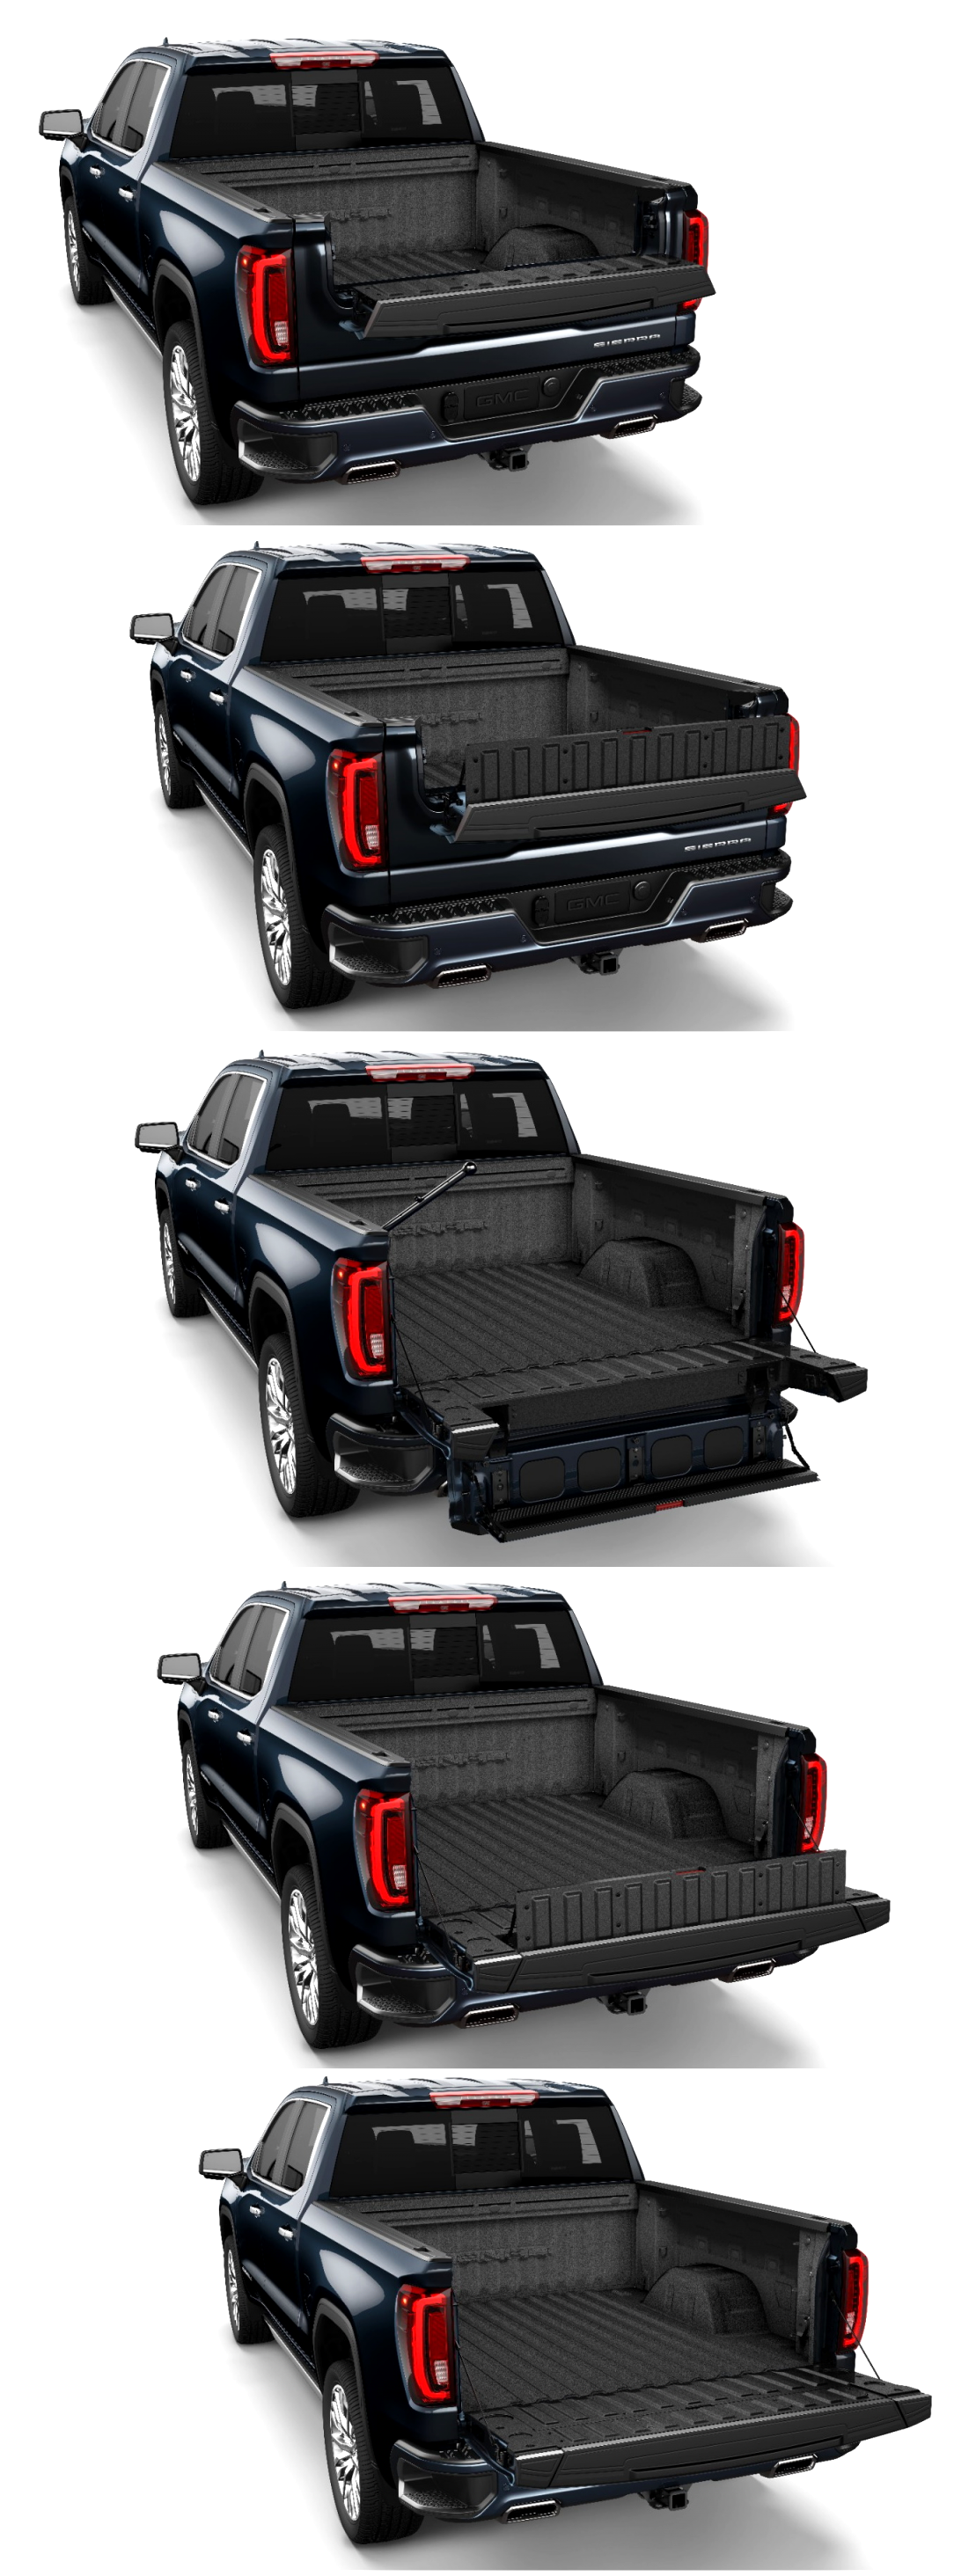 GMC pickup colors 2021 Engine